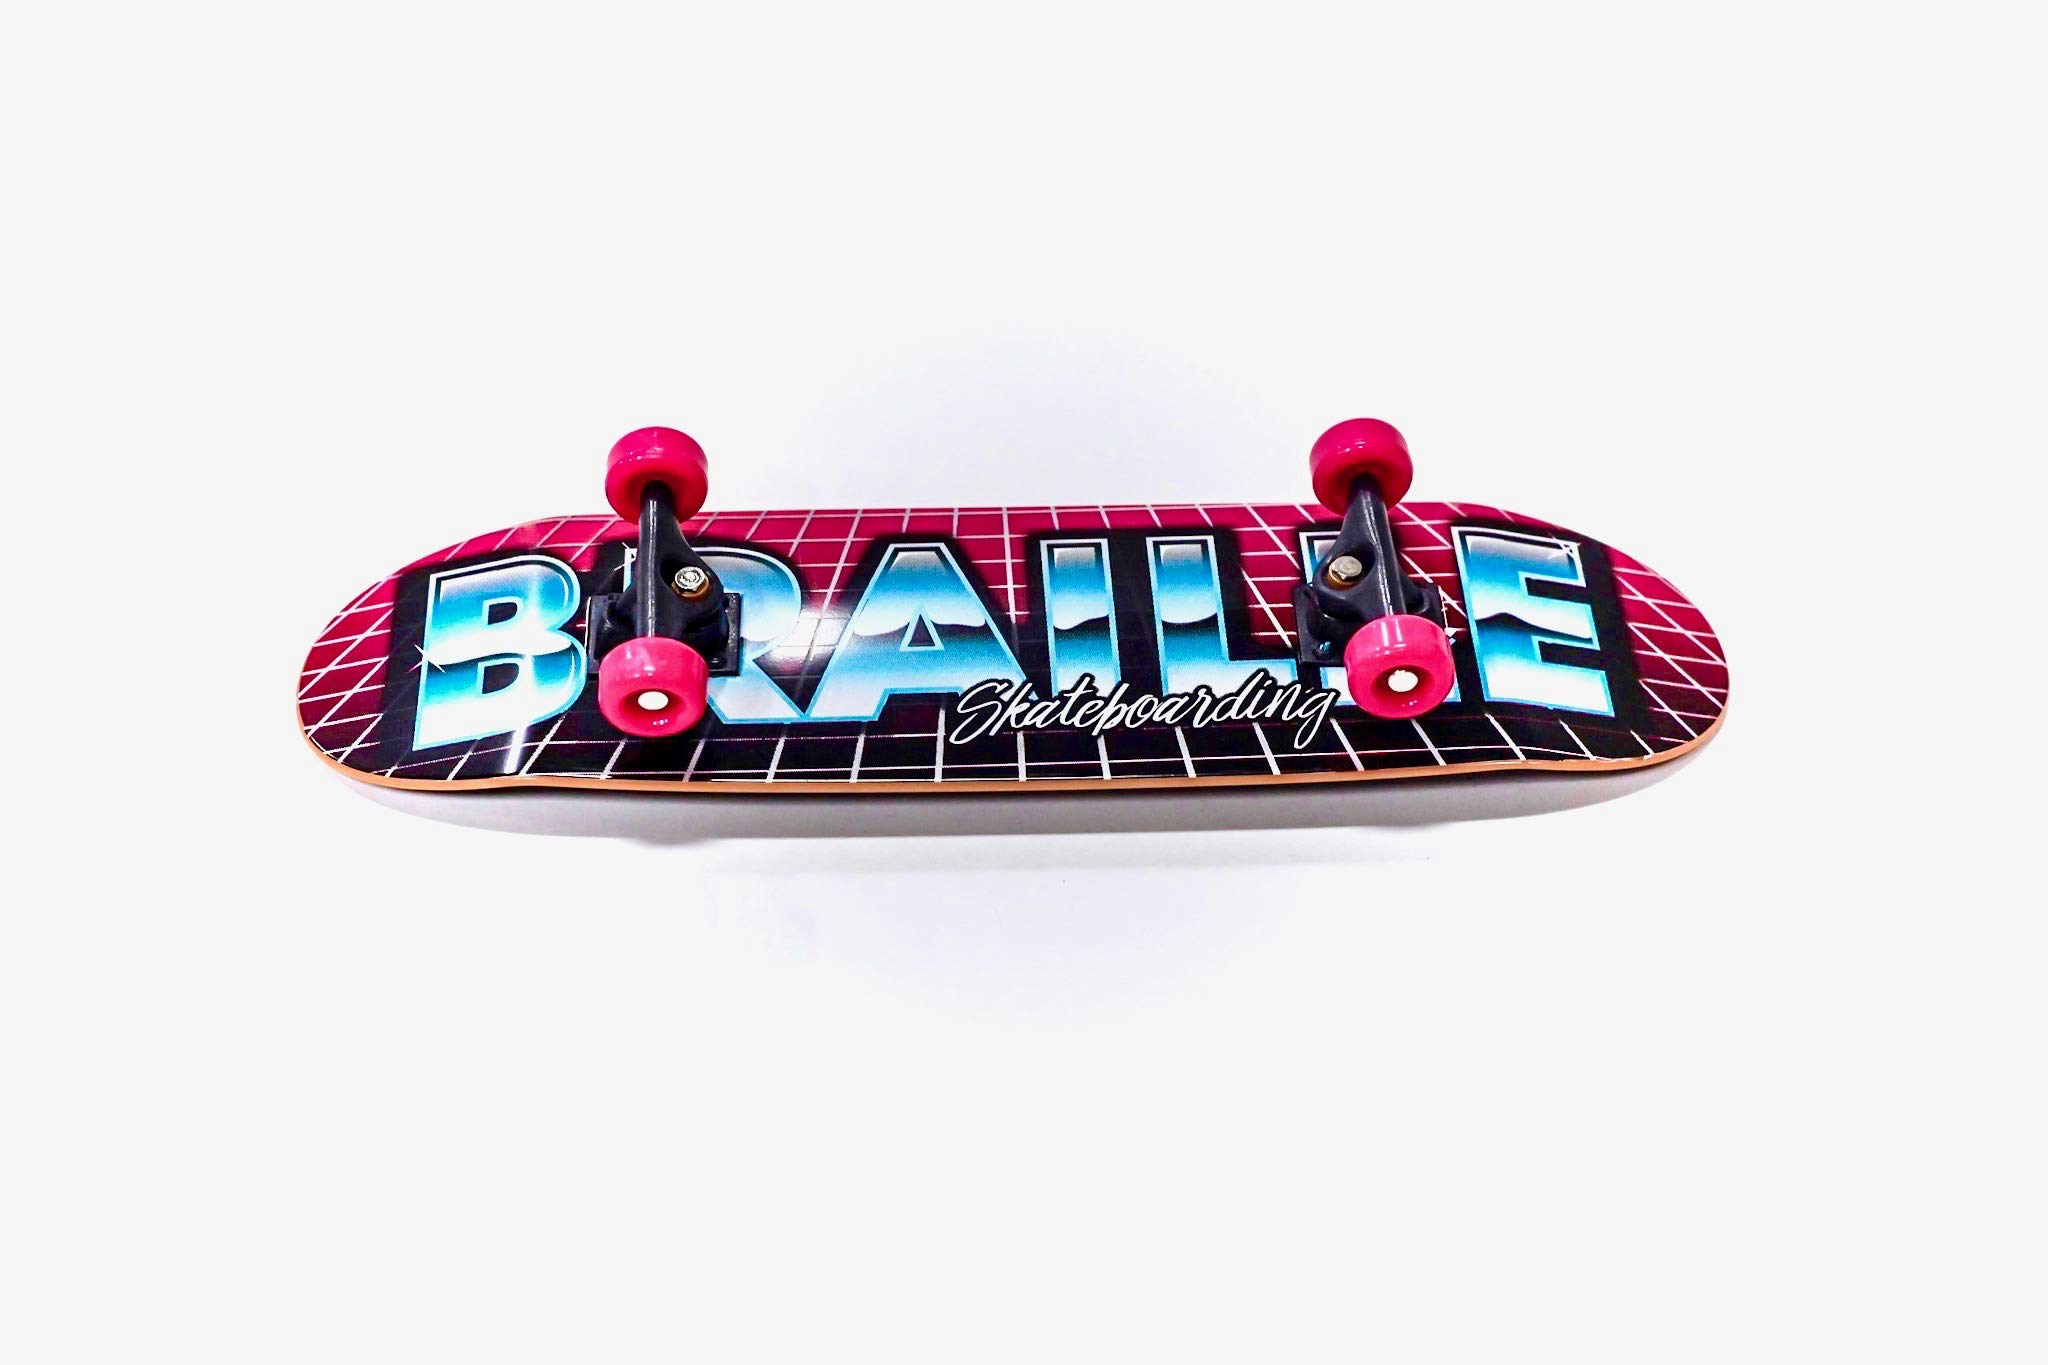 Braille Skateboarding Aaron Kyro 80's 11inch Professional Hand Board. Toy Skateboard Comes with Wheels, Trucks, Hardware and Tools. Real Griptape. by Braille Skateboarding (Image #5)